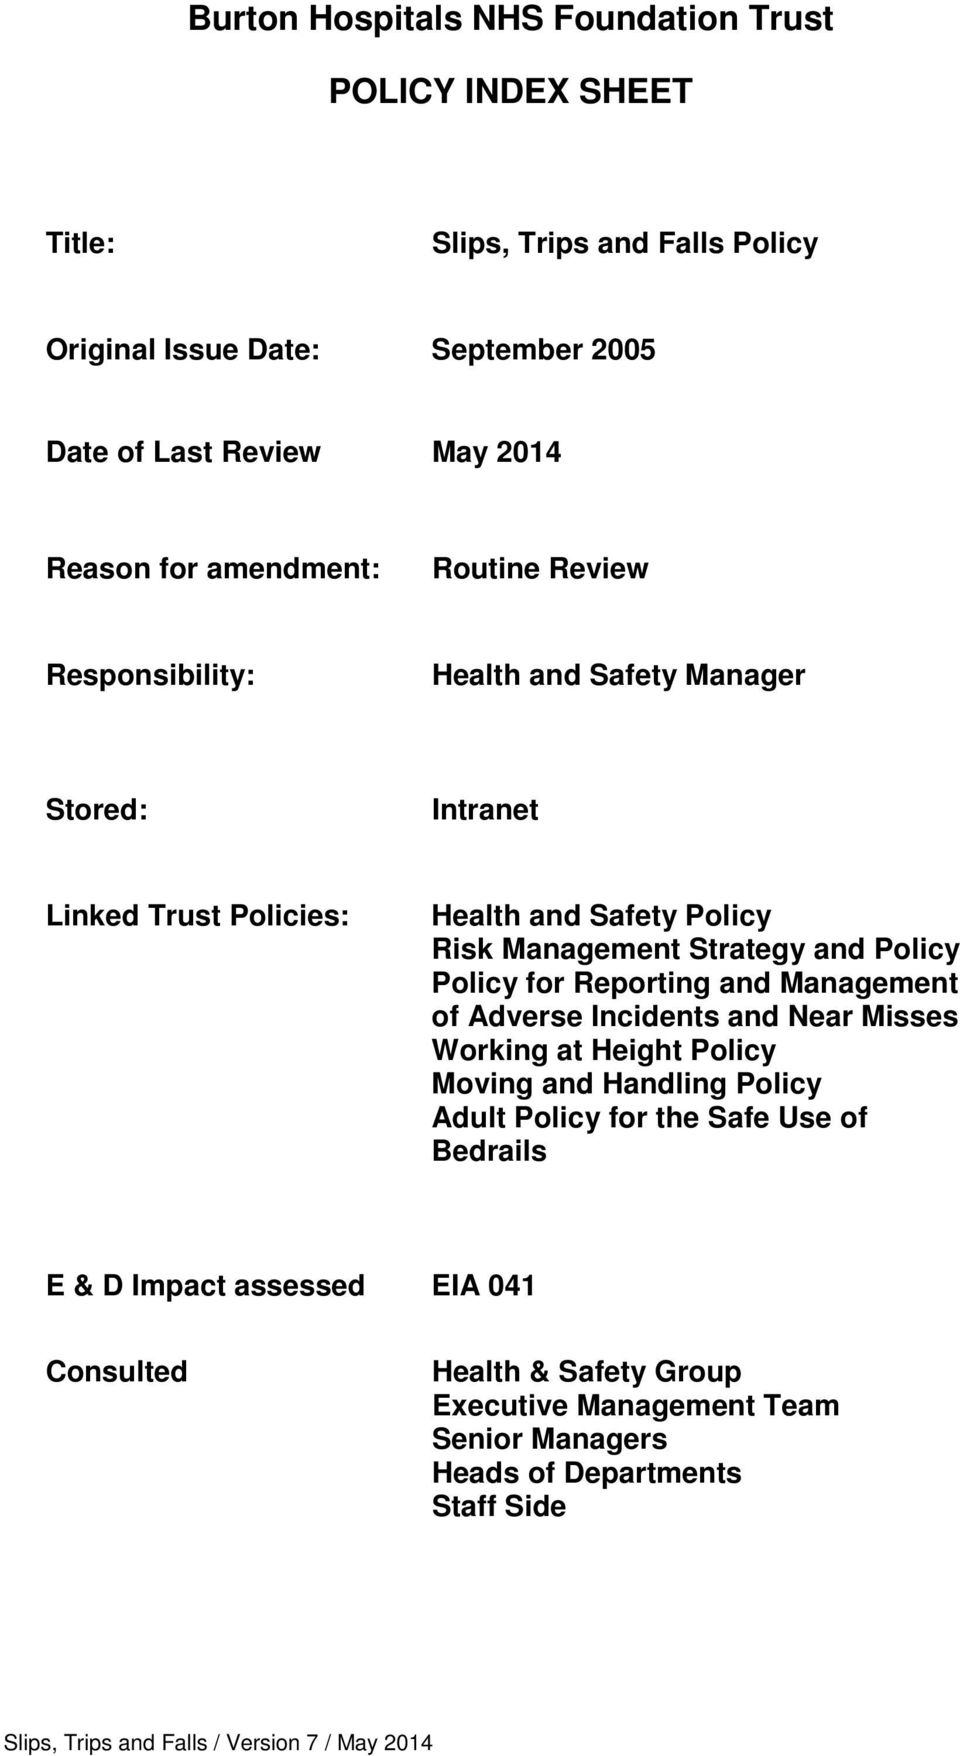 Policy for Reporting and Management of Adverse Incidents and Near Misses Working at Height Policy Moving and Handling Policy Adult Policy for the Safe Use of Bedrails E &